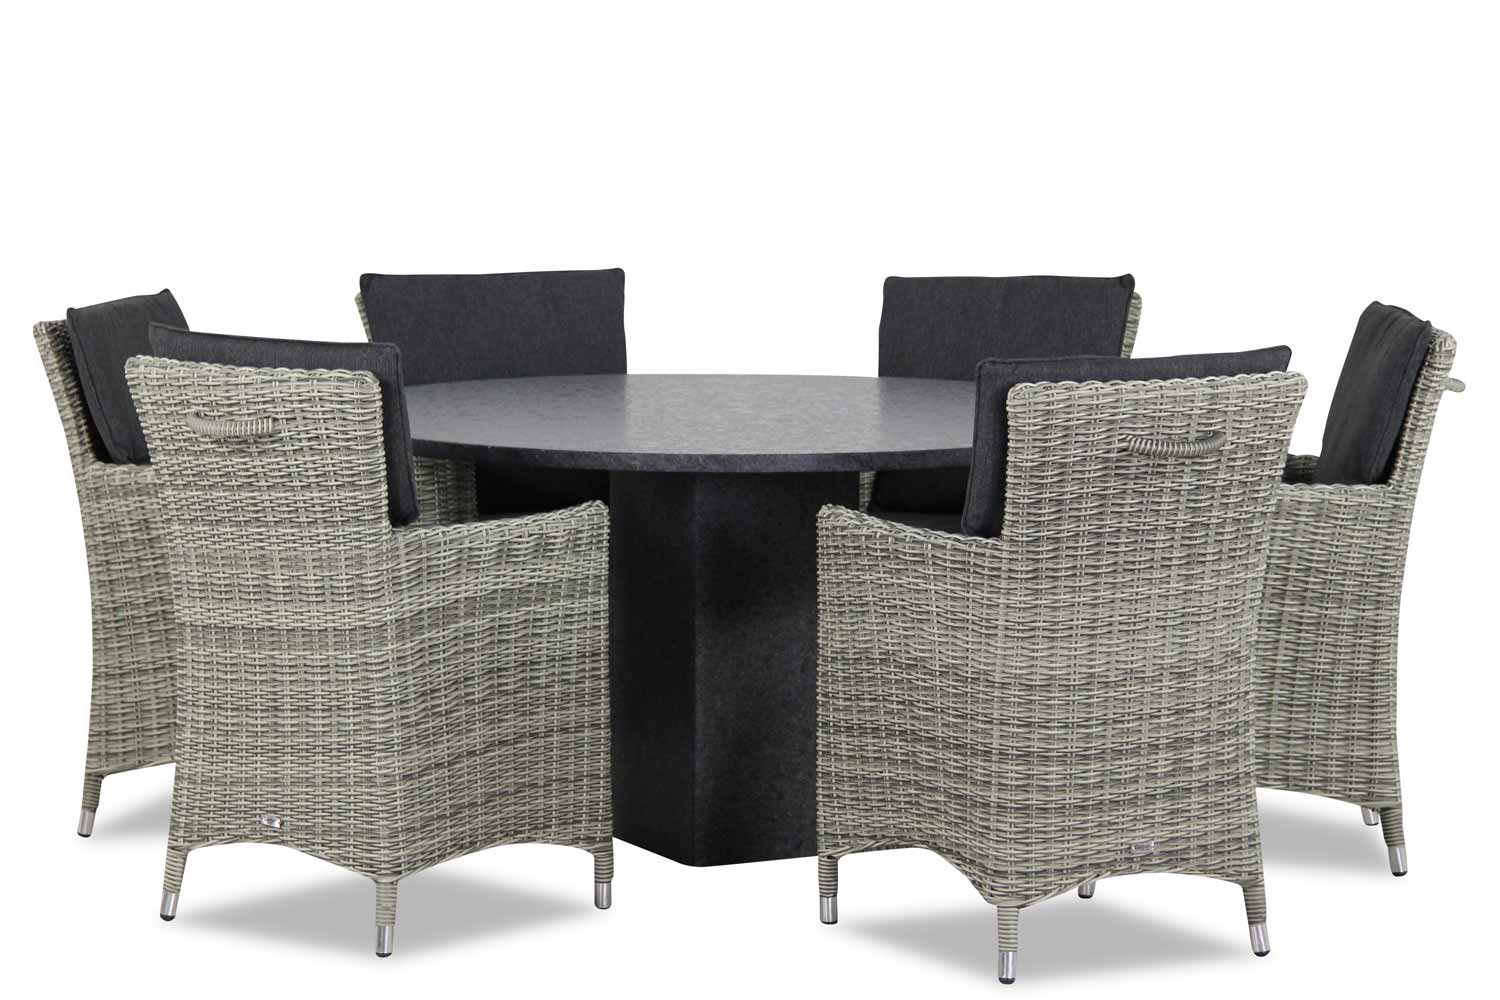 Wicker Garden Collection Springfield/Graniet 140 cm dining tuinset 7-delig